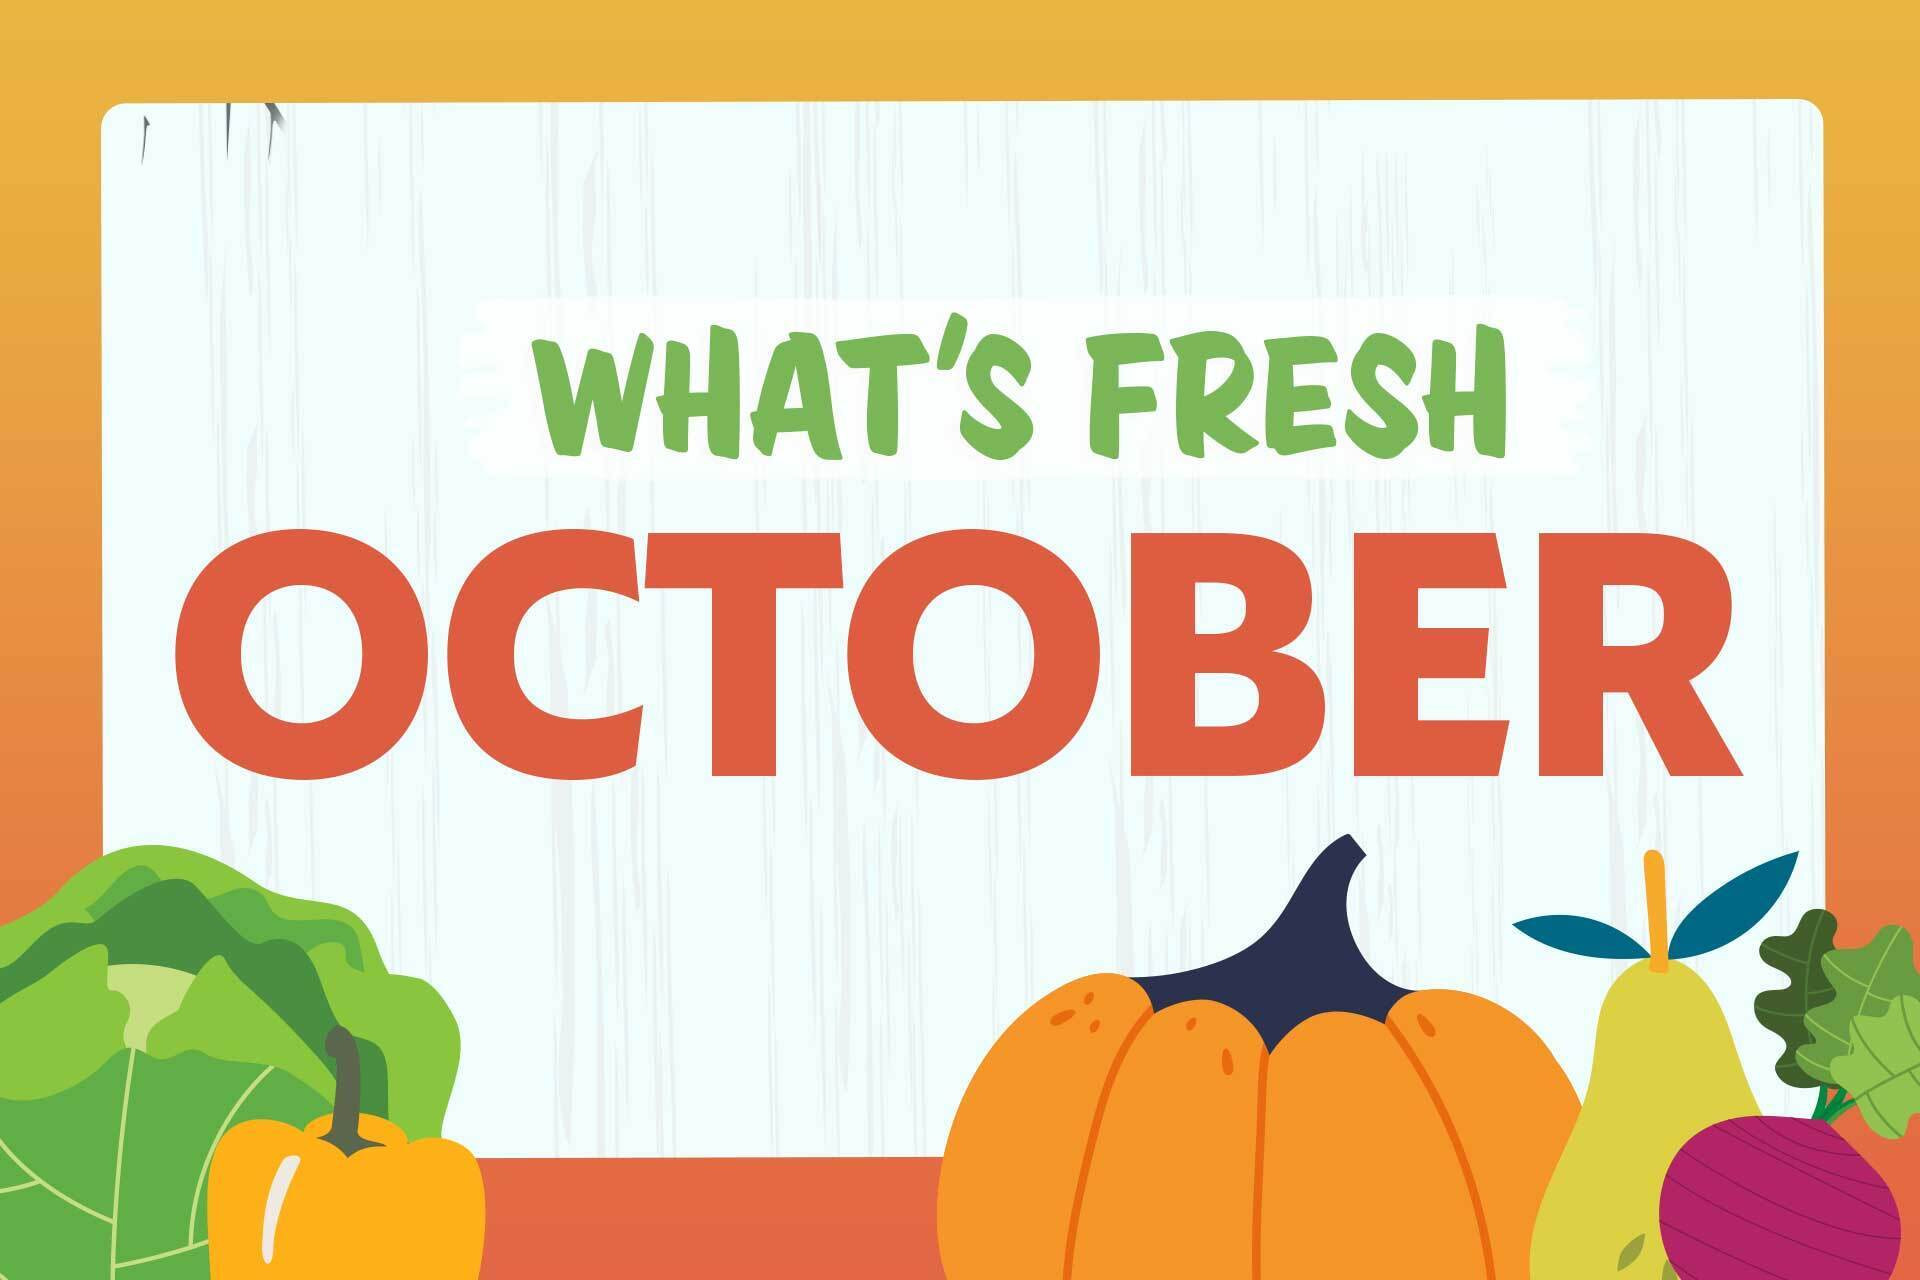 October Produce Guide: What's In Season Now?